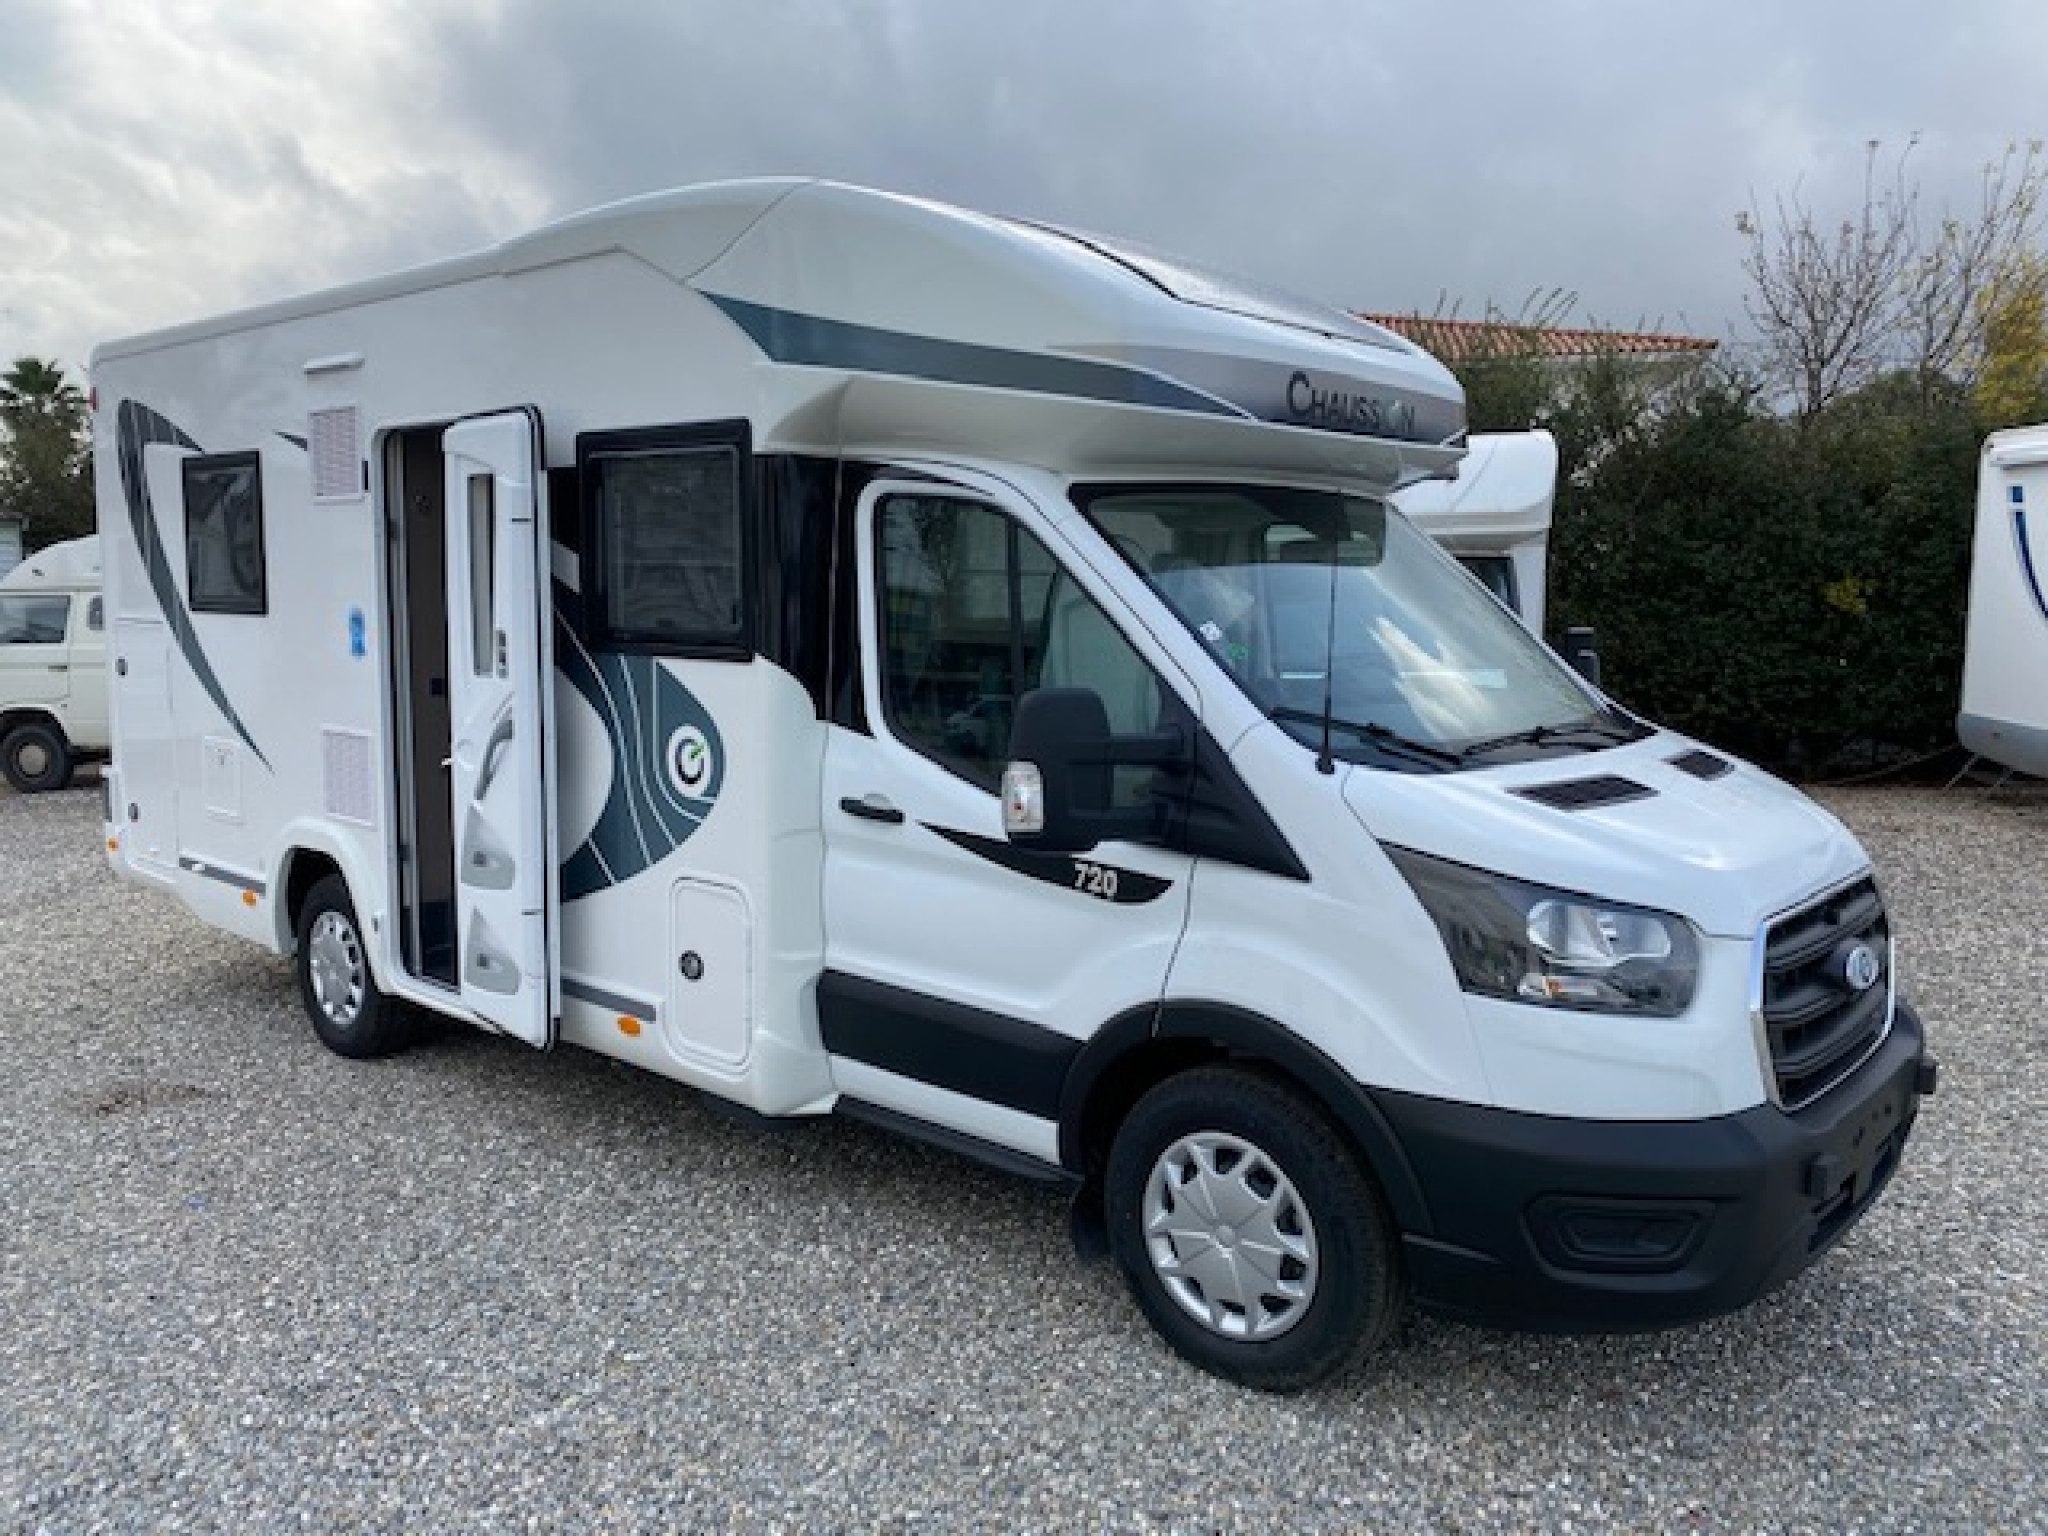 Camping-car CHAUSSON FIRST LINE 720